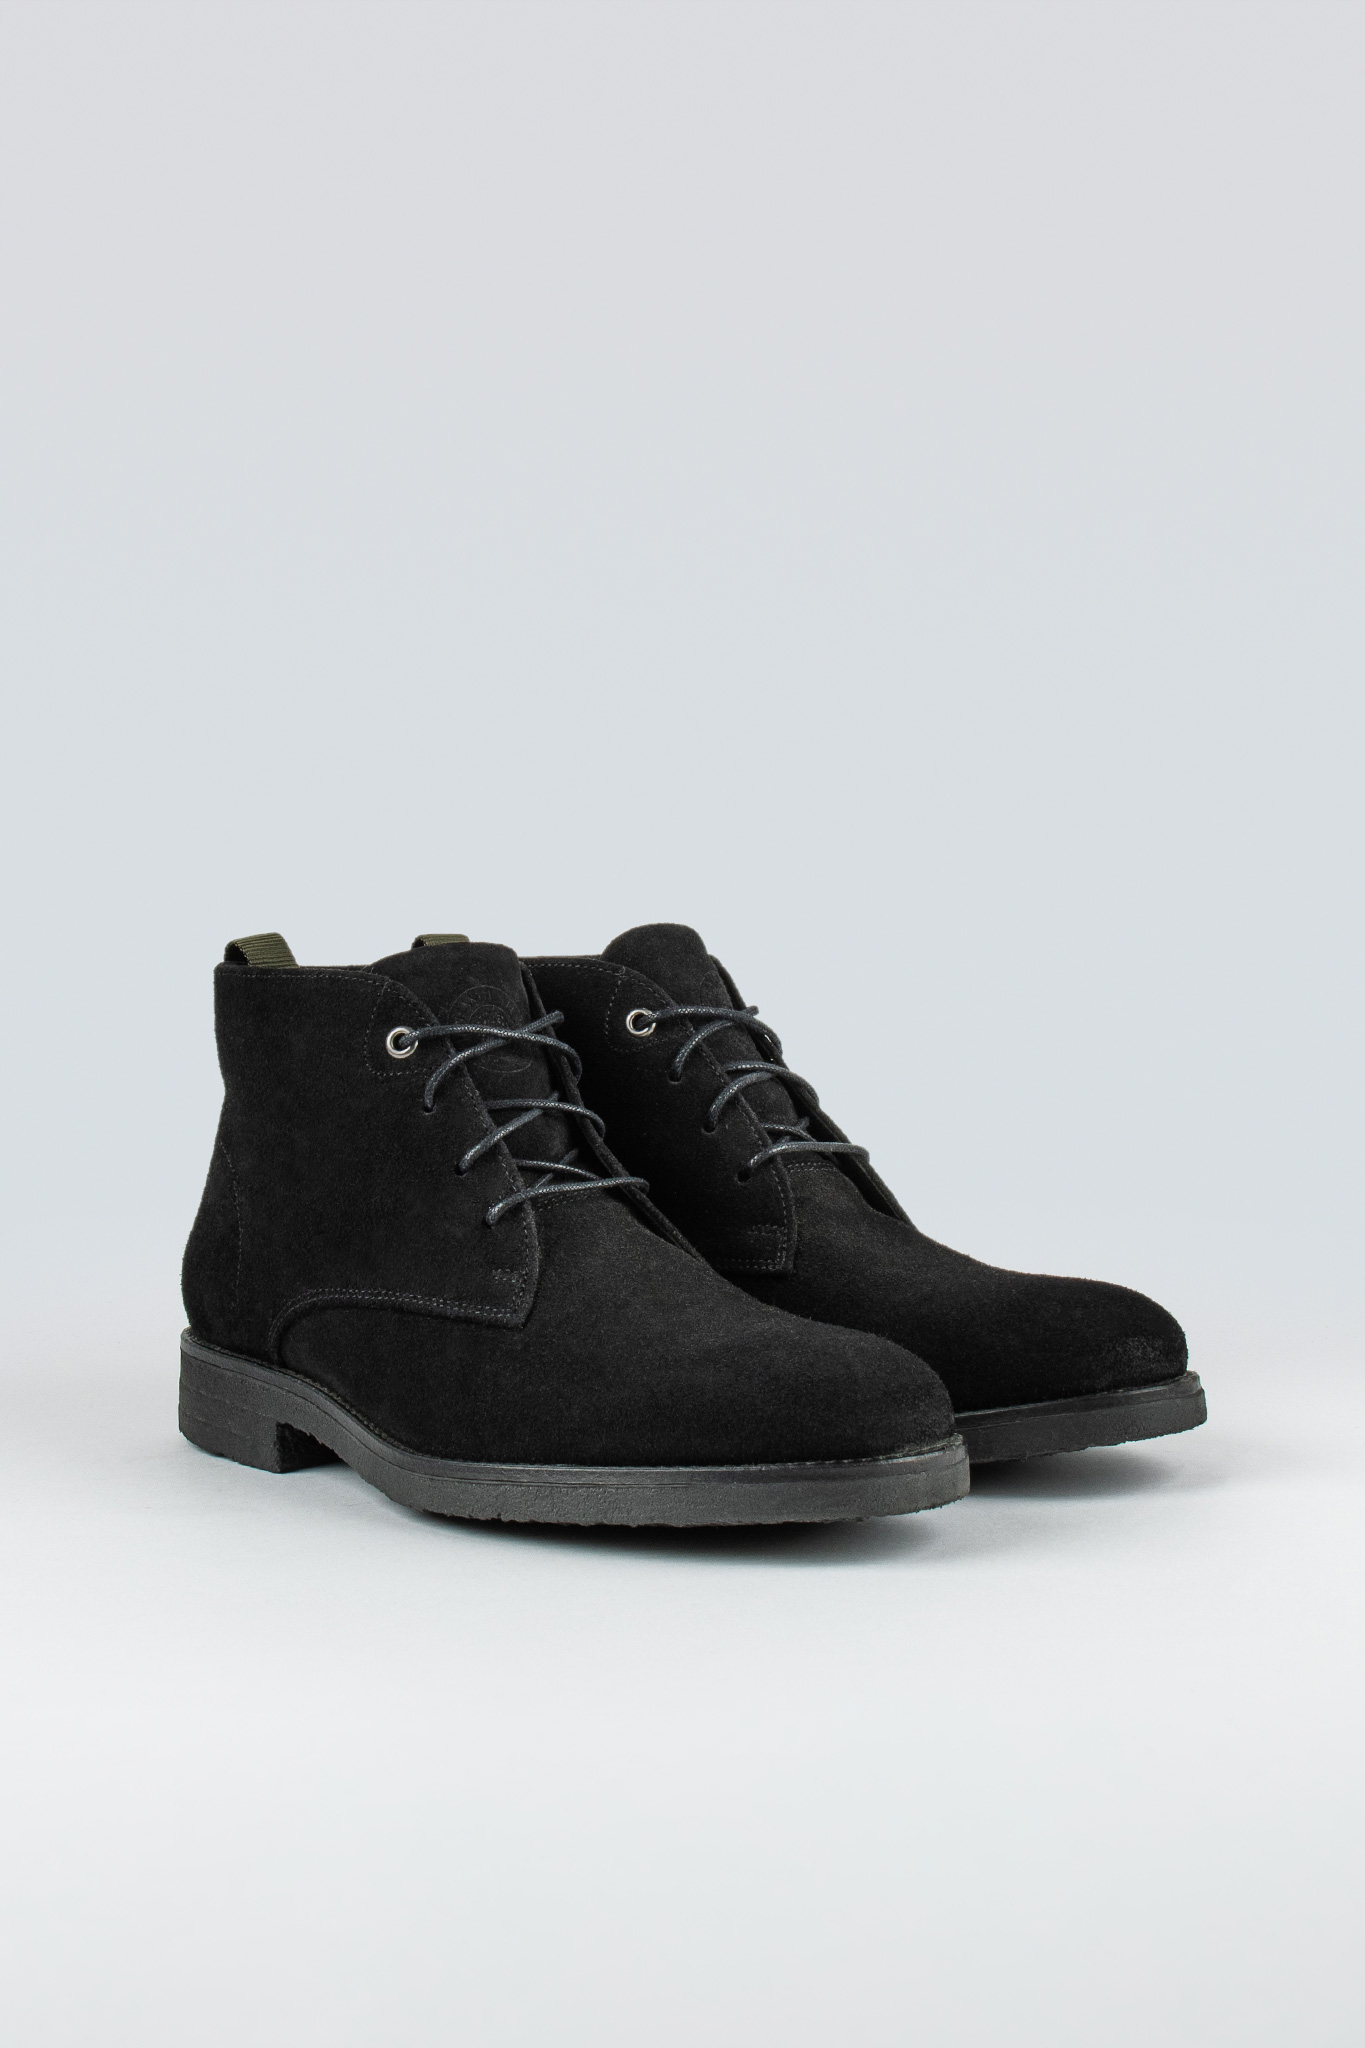 Tony Suede Black